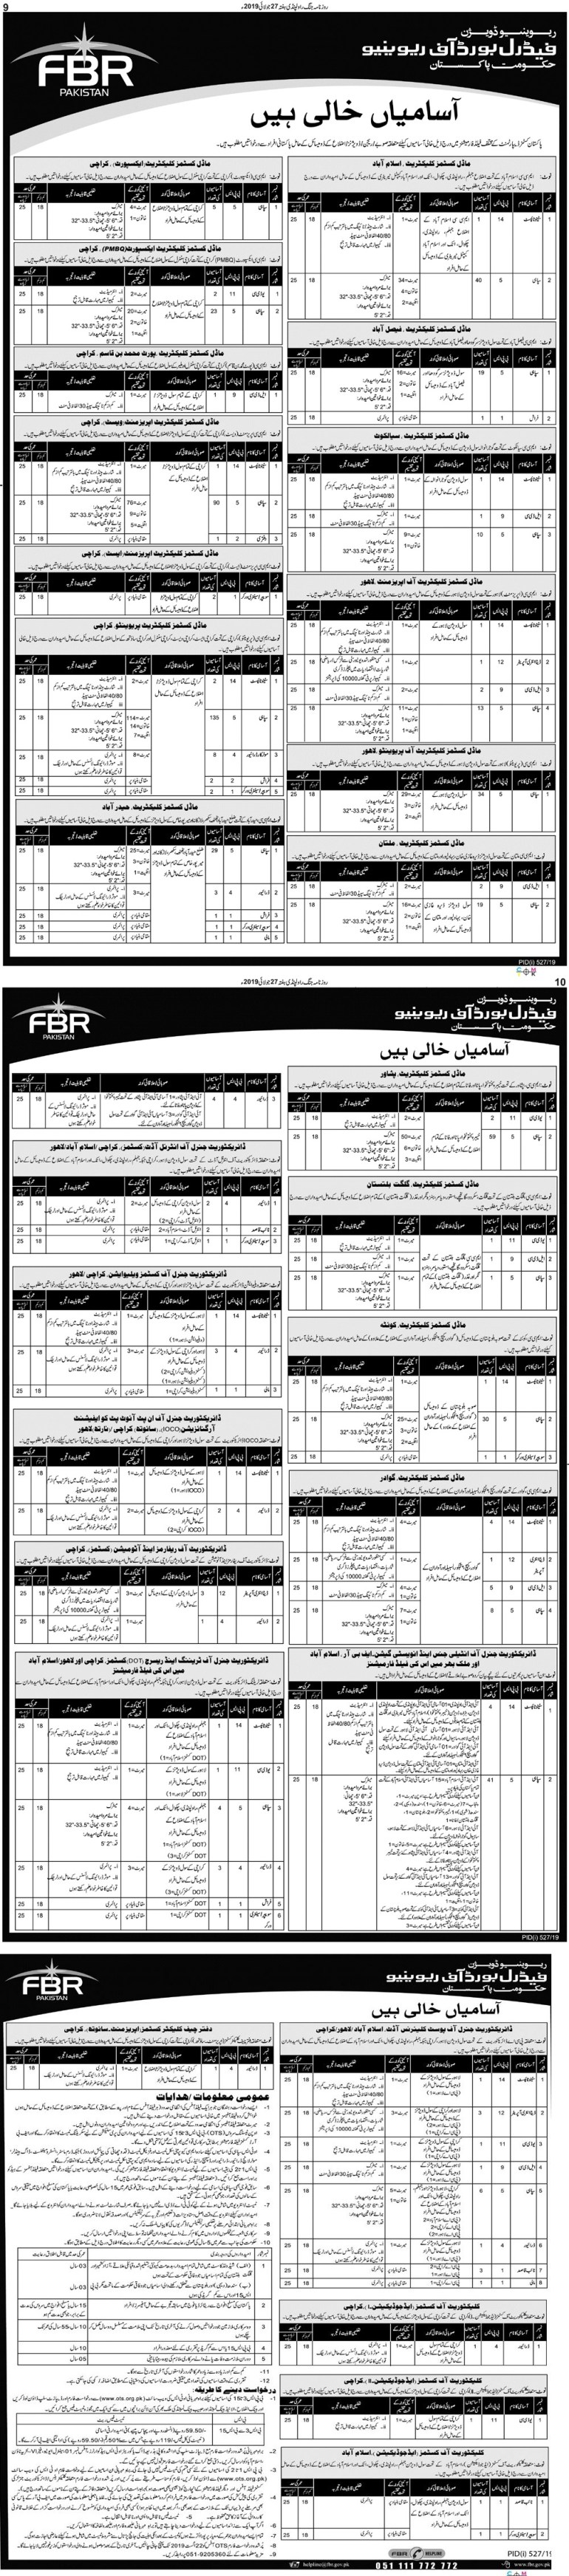 Federal Board of Revenue Jobs Advertisement